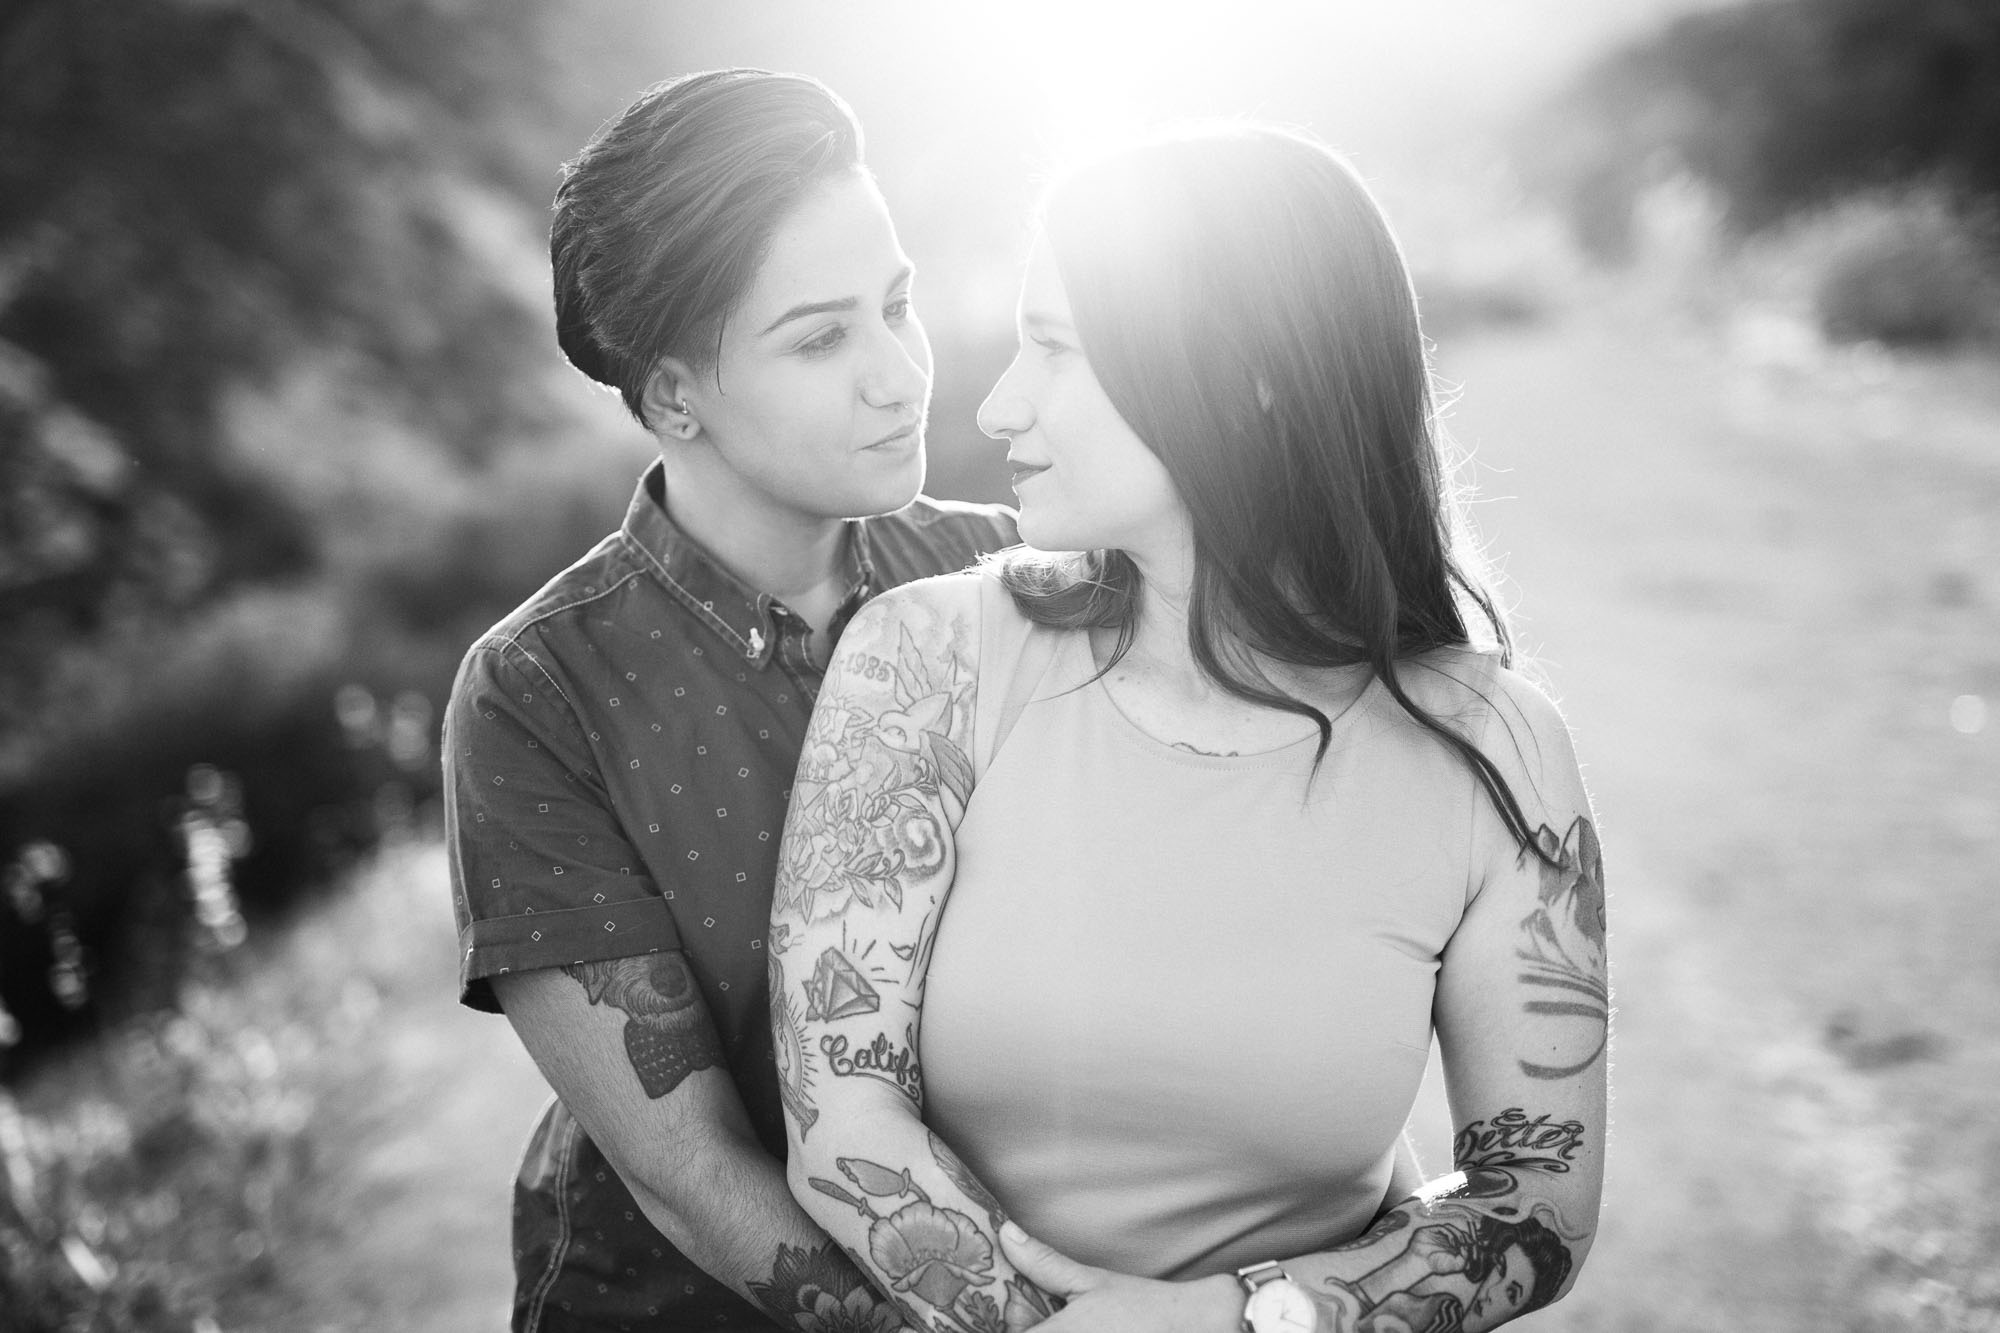 www-marycostaphotography-com-angeles-national-forest-engagement-0026